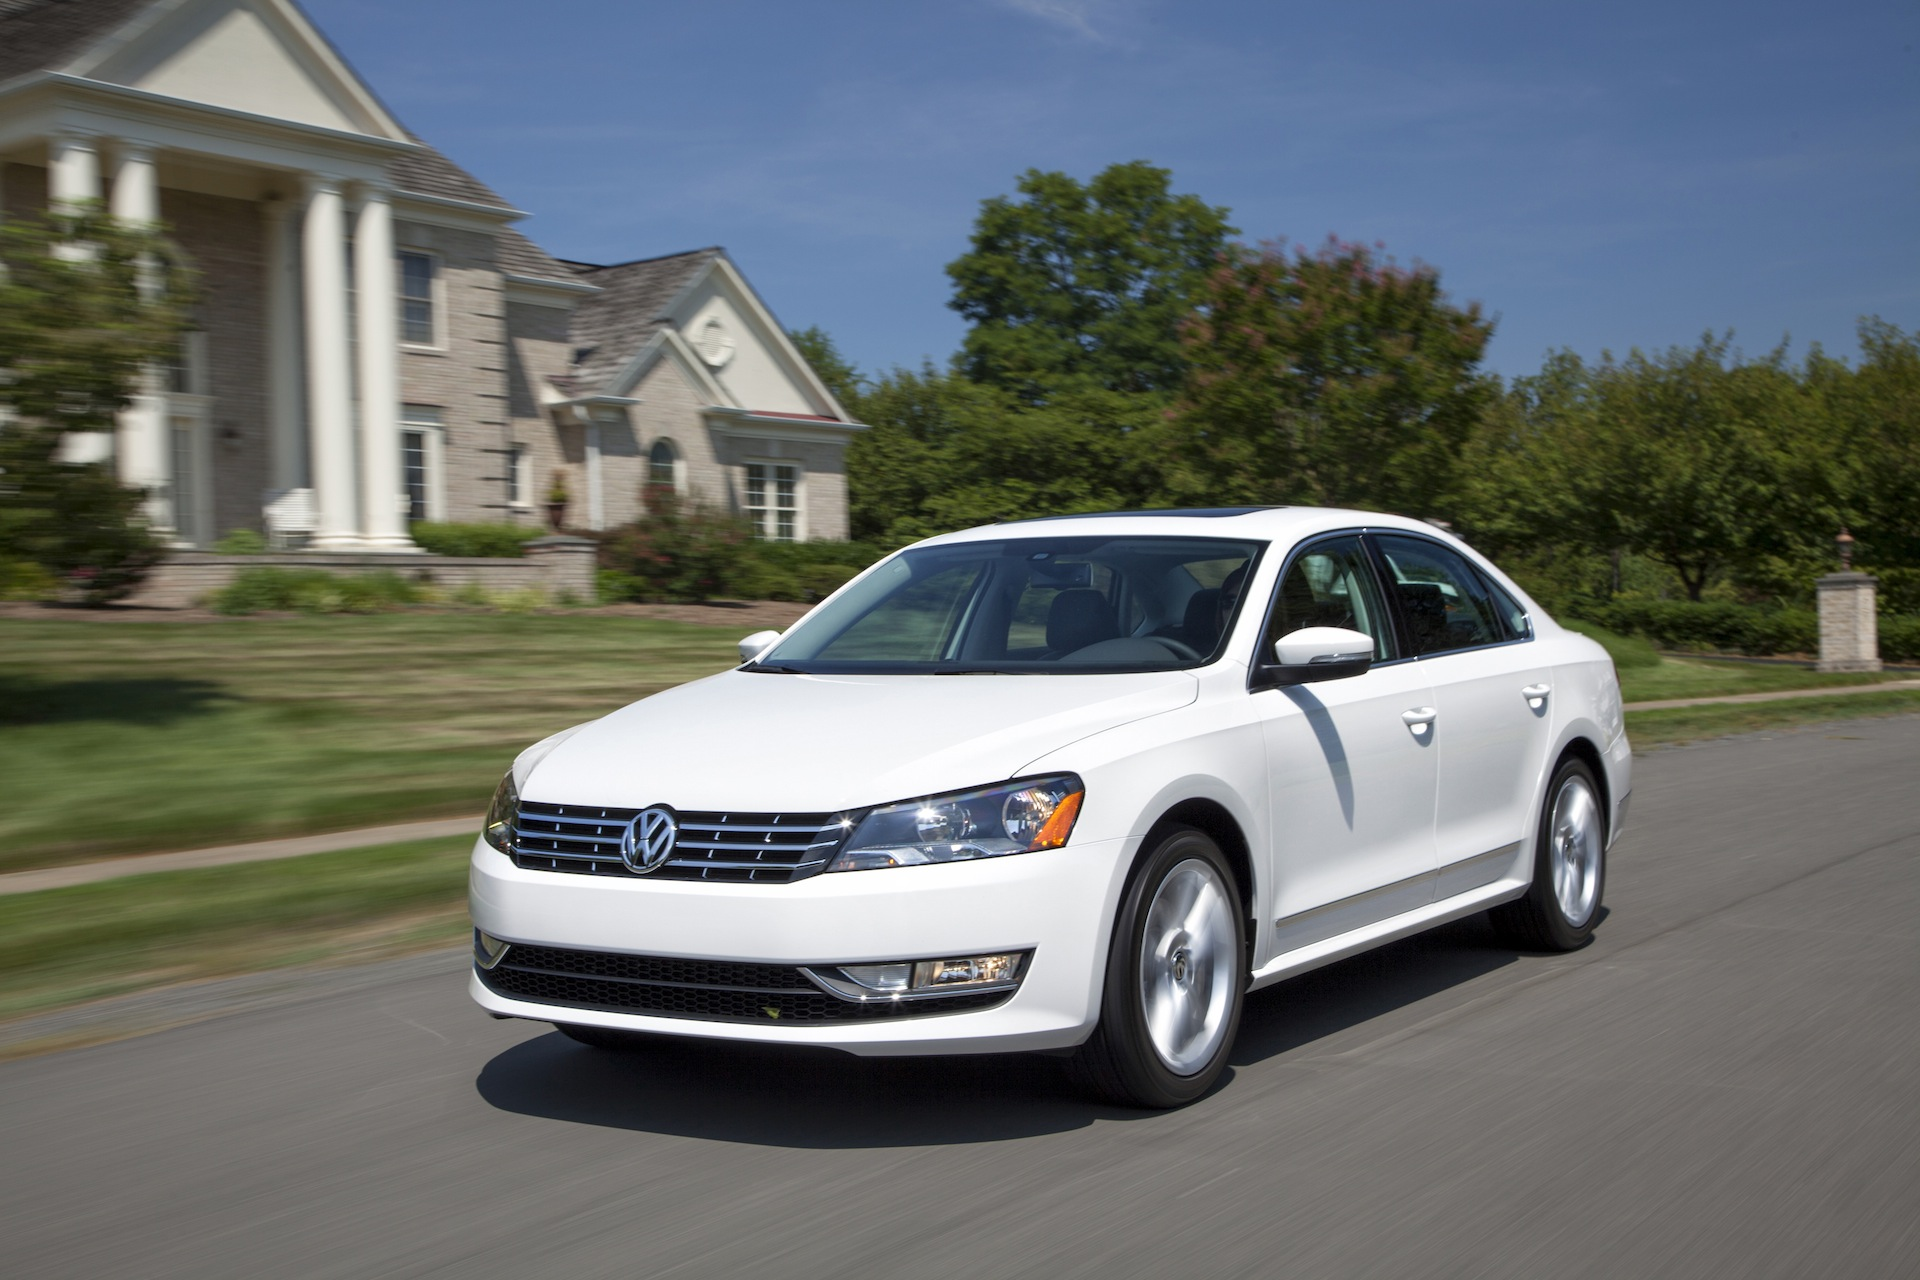 VW to offer TDI sel owners $7 000 plus back rumor